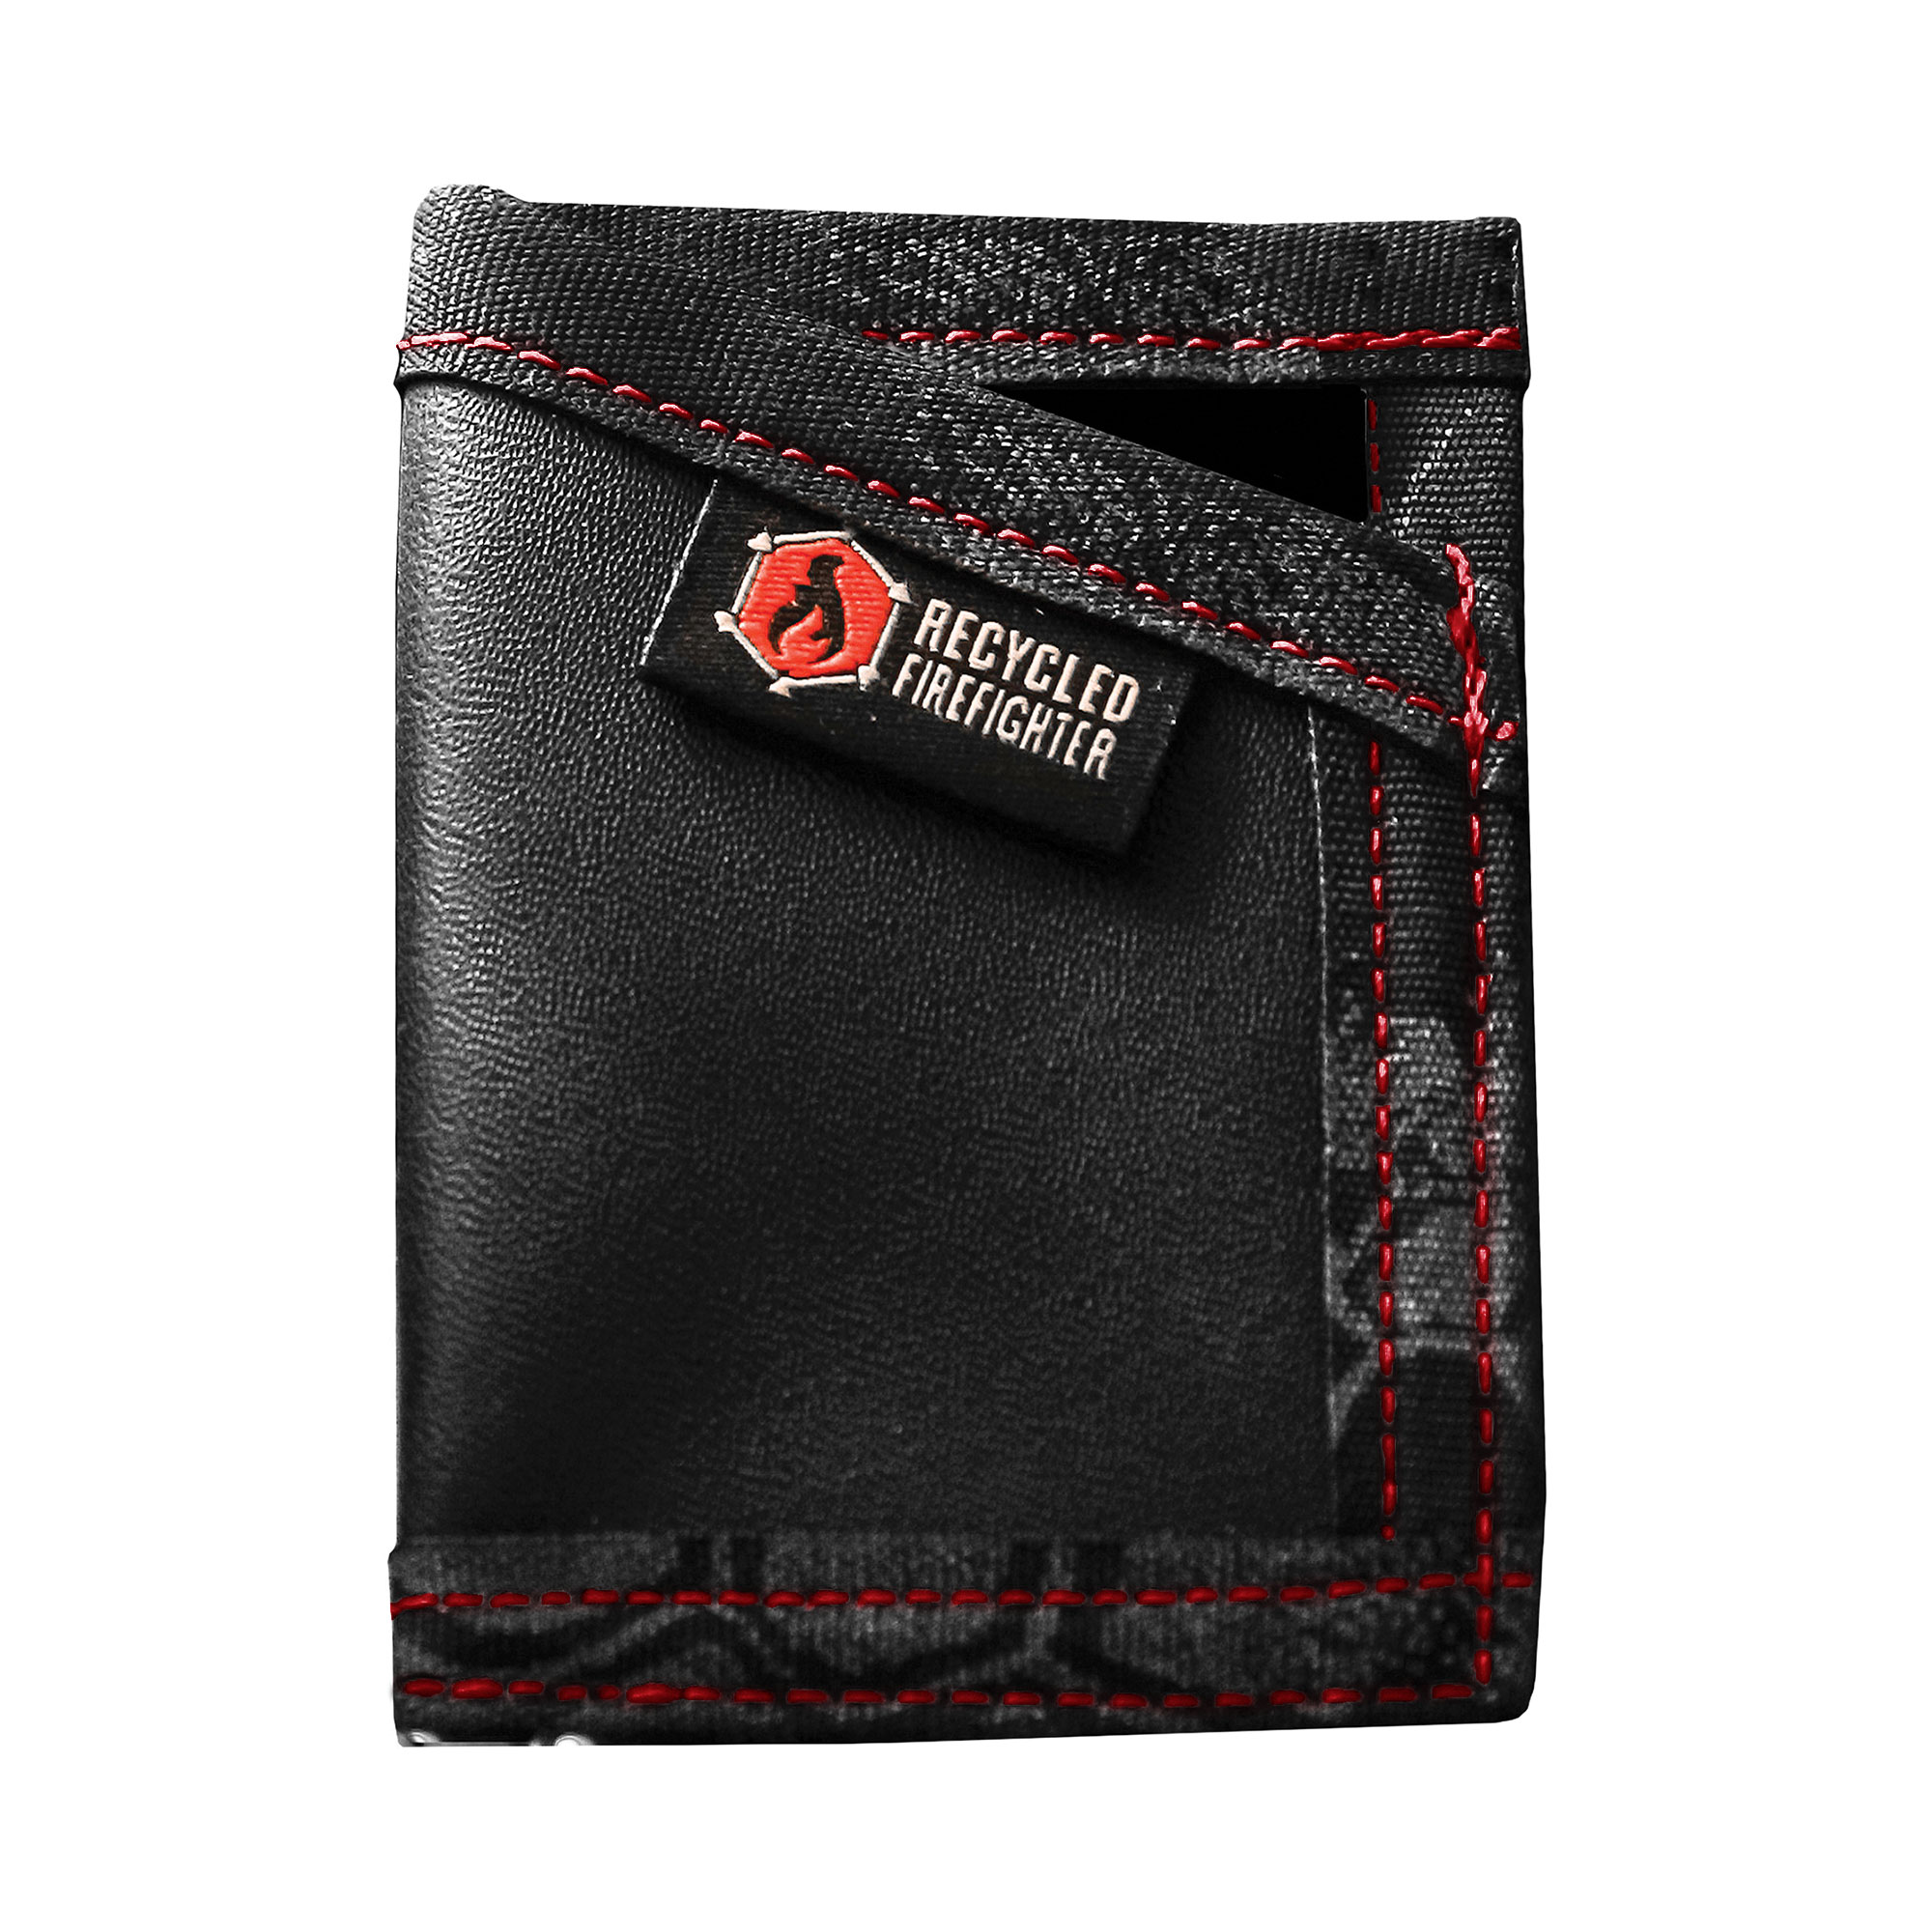 The Sergeant - Combat Boot Leather Wallet